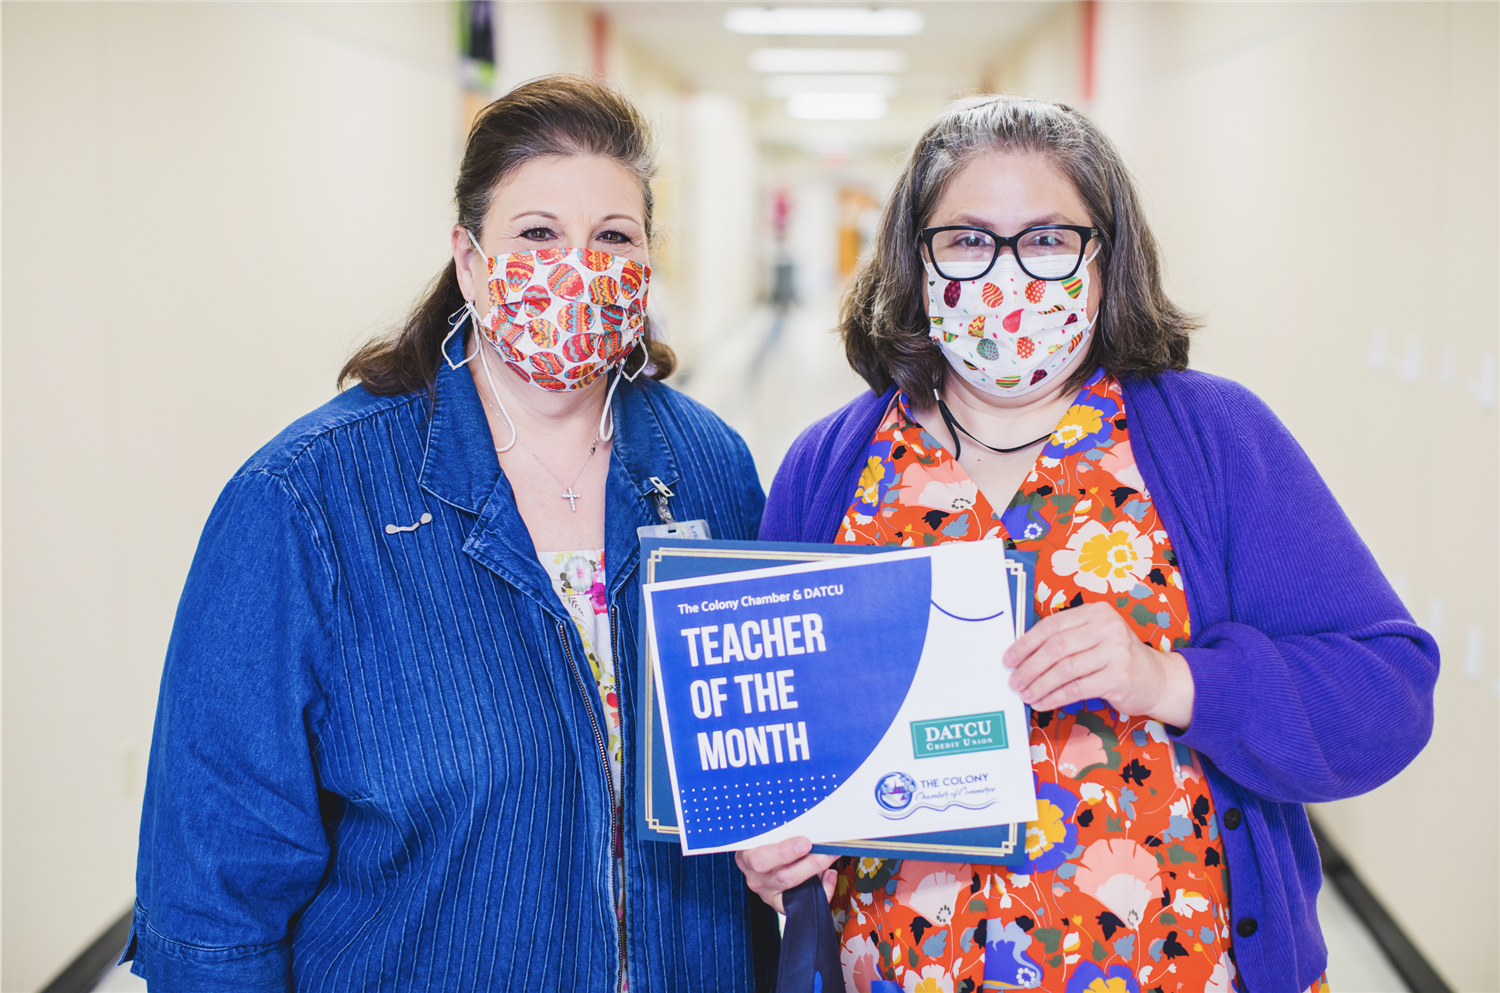 Morningside Elementary Teacher and Student named March 2021 Teacher and Student of the Month.